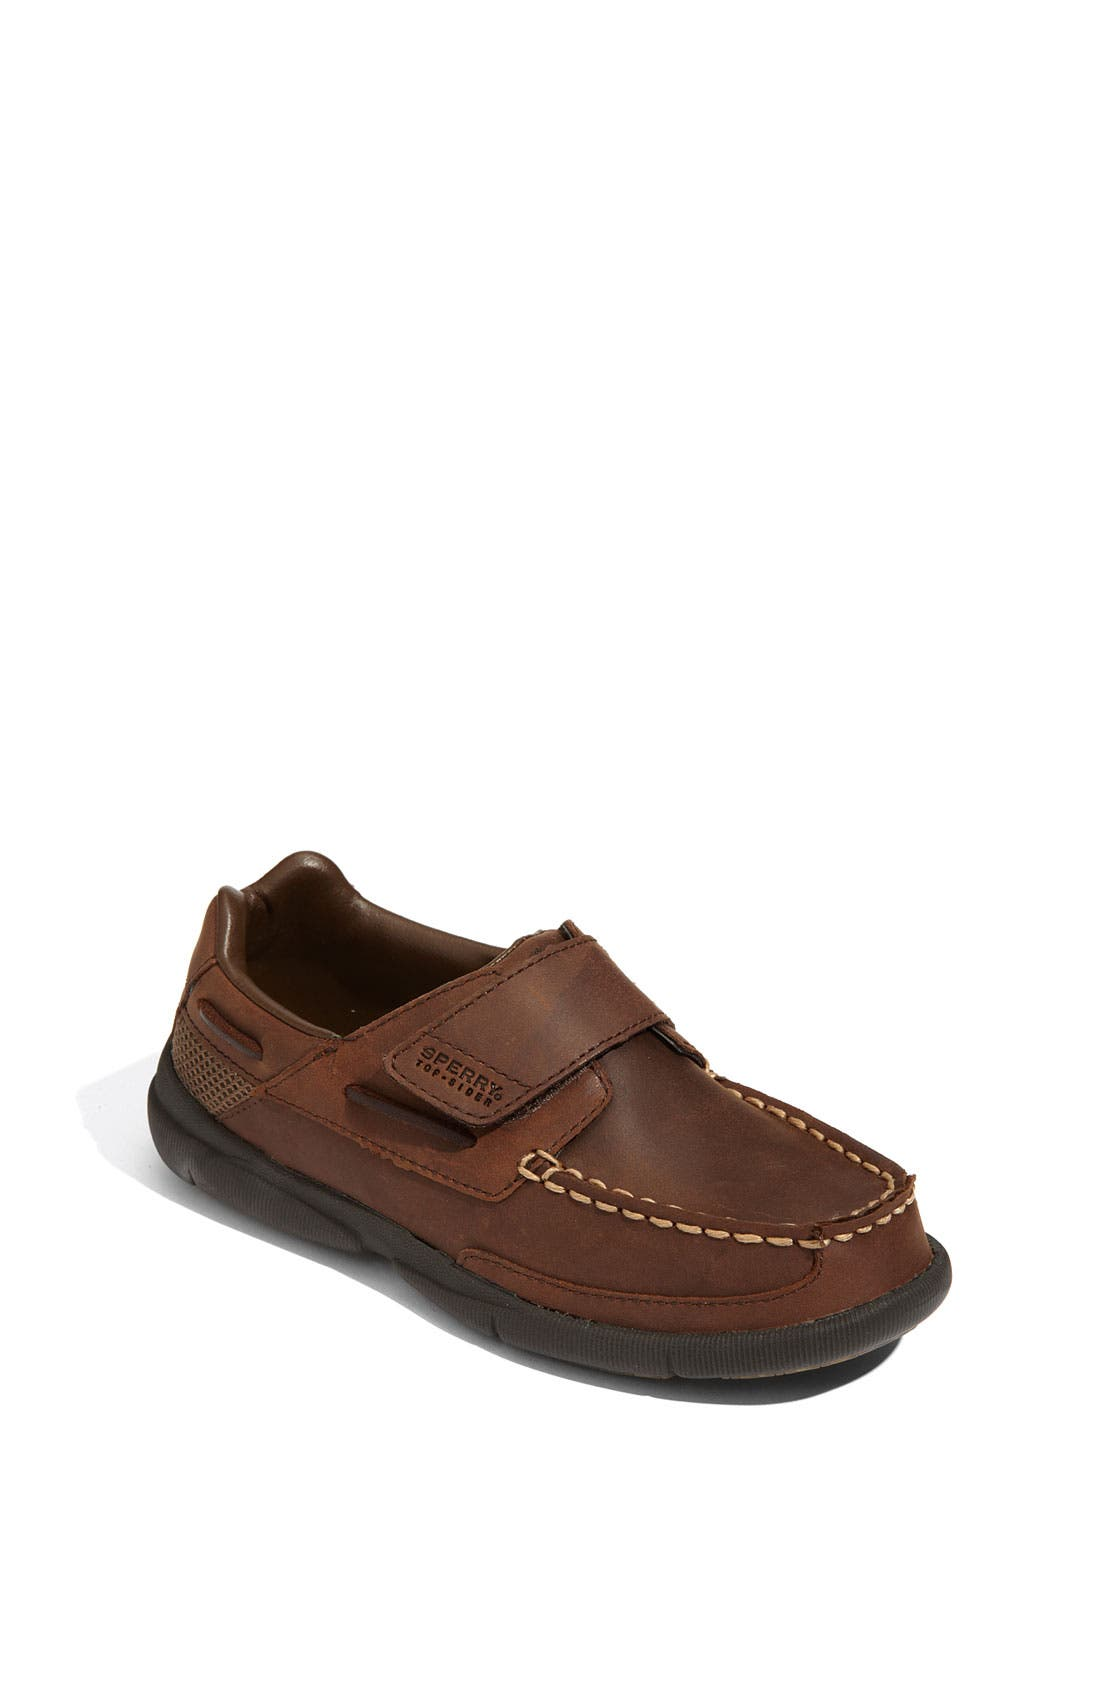 Alternate Image 1 Selected - Sperry Kids 'Charter HL' Boat Shoe (Walker, Toddler, Little Kid & Big Kid)